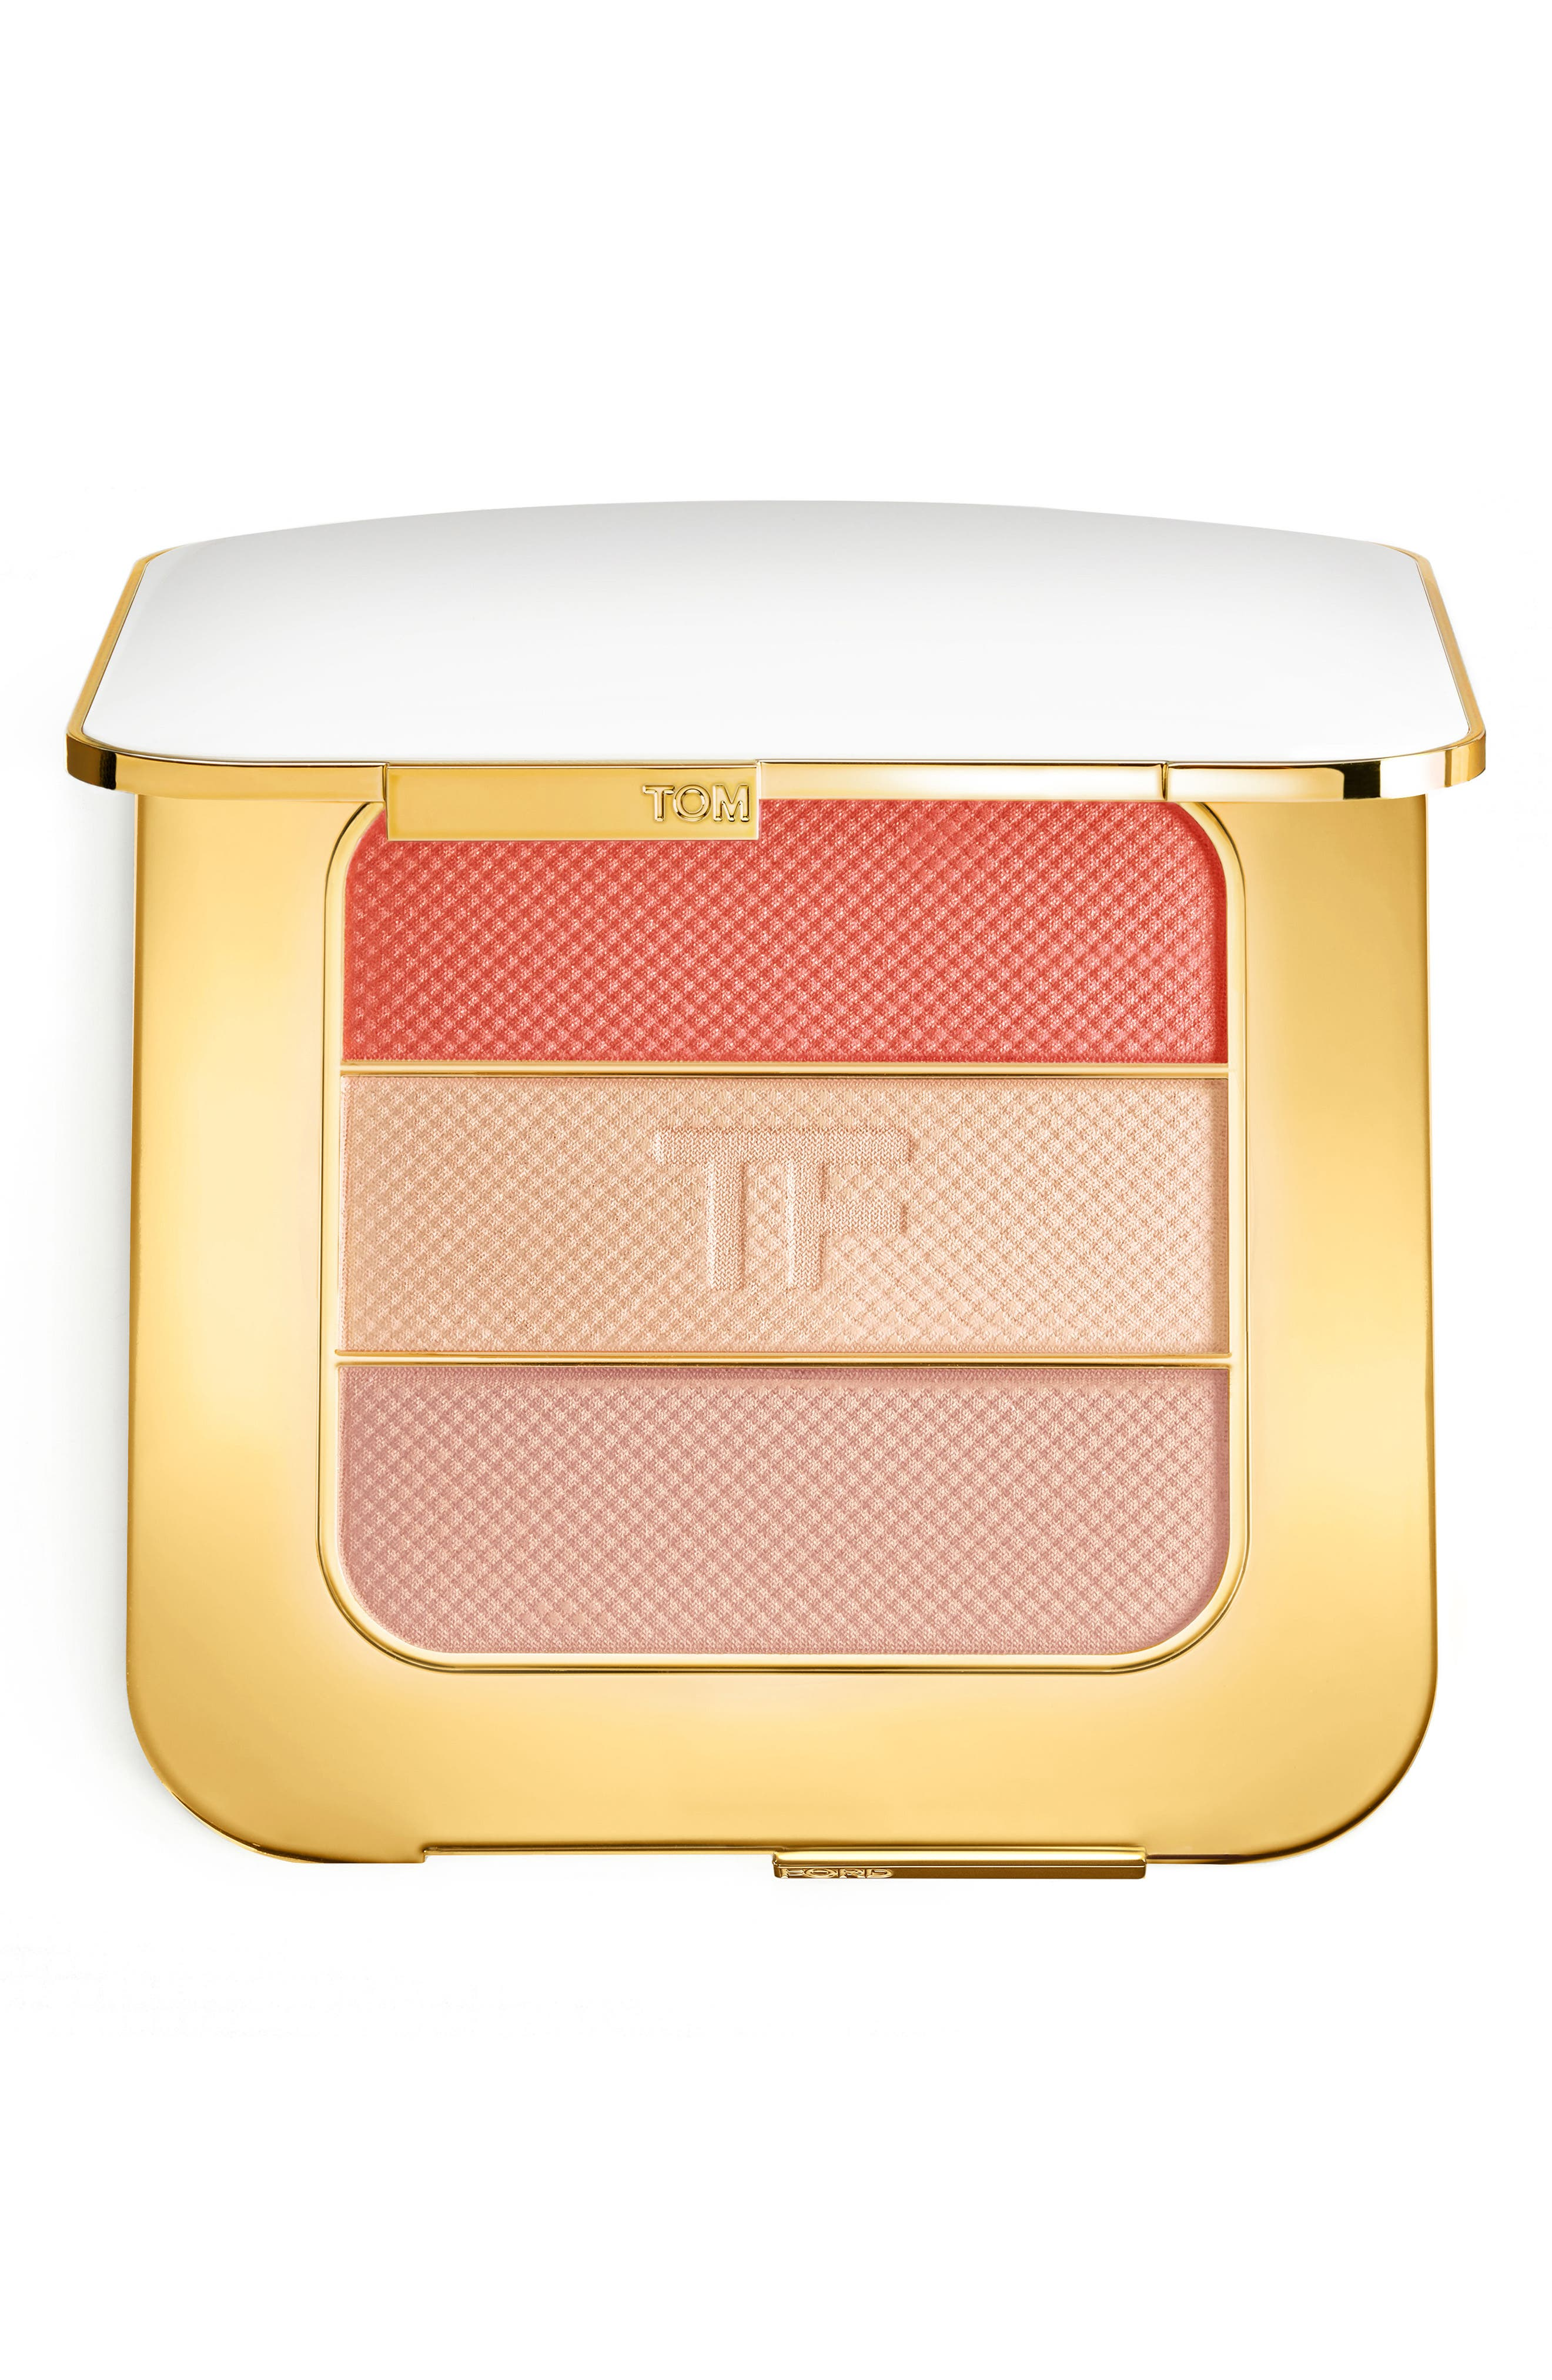 Soleil Contouring Compact,                         Main,                         color, Nude Glow